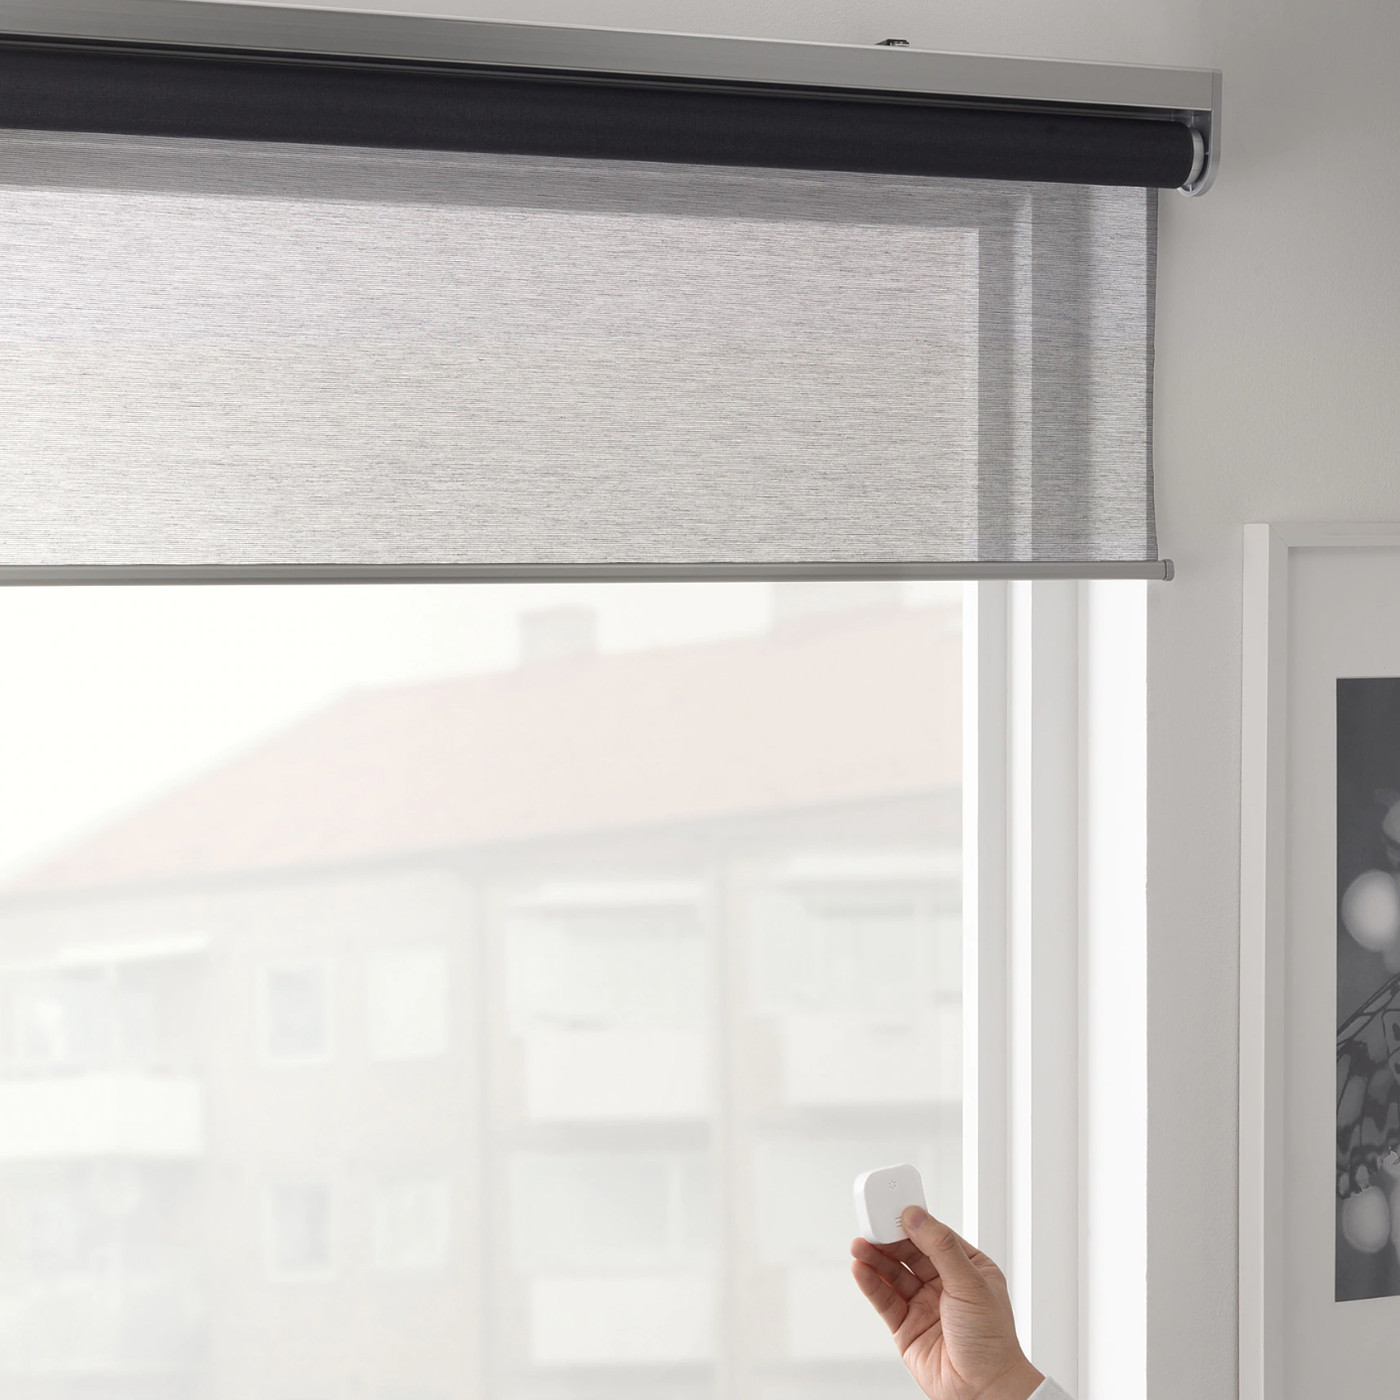 Ikea S Cheap Smart Blinds Could Finally Make The Perfect Lazy Sunday Morning Complete The Verge